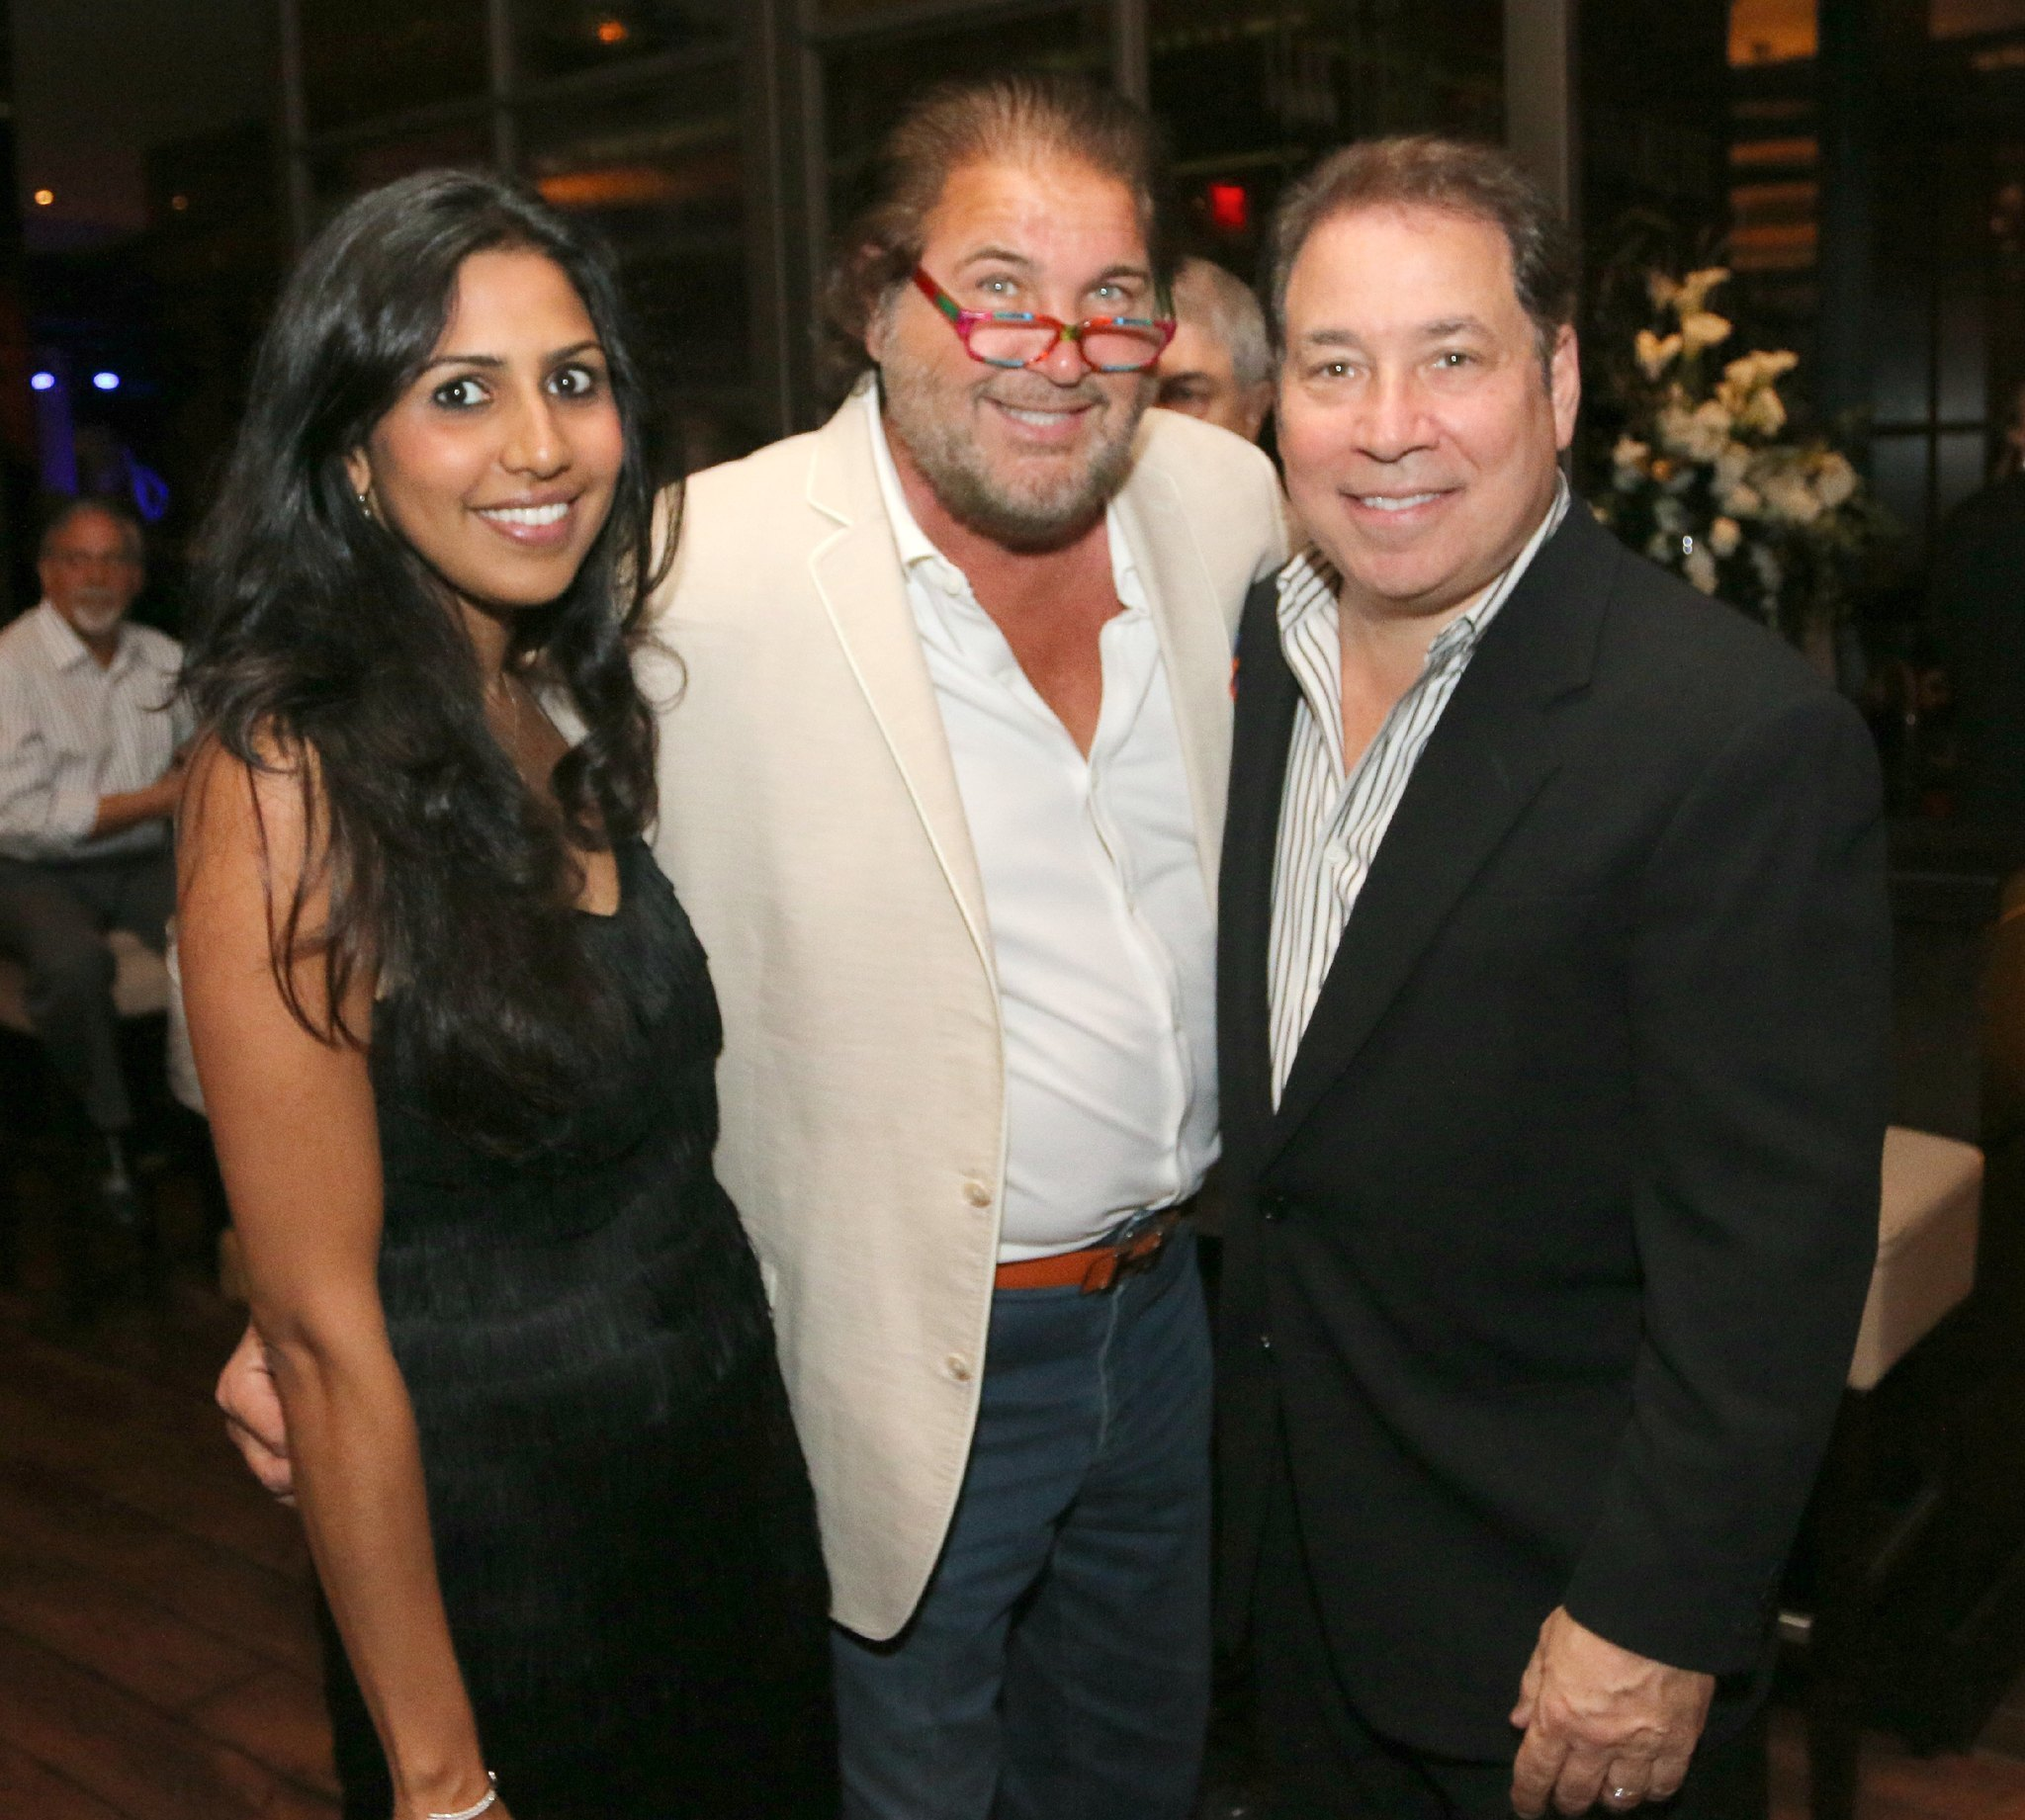 Jazziz Nightlife Grand Opening Party - Zakiya Fagien, Warren Diamond and Michael Fagien